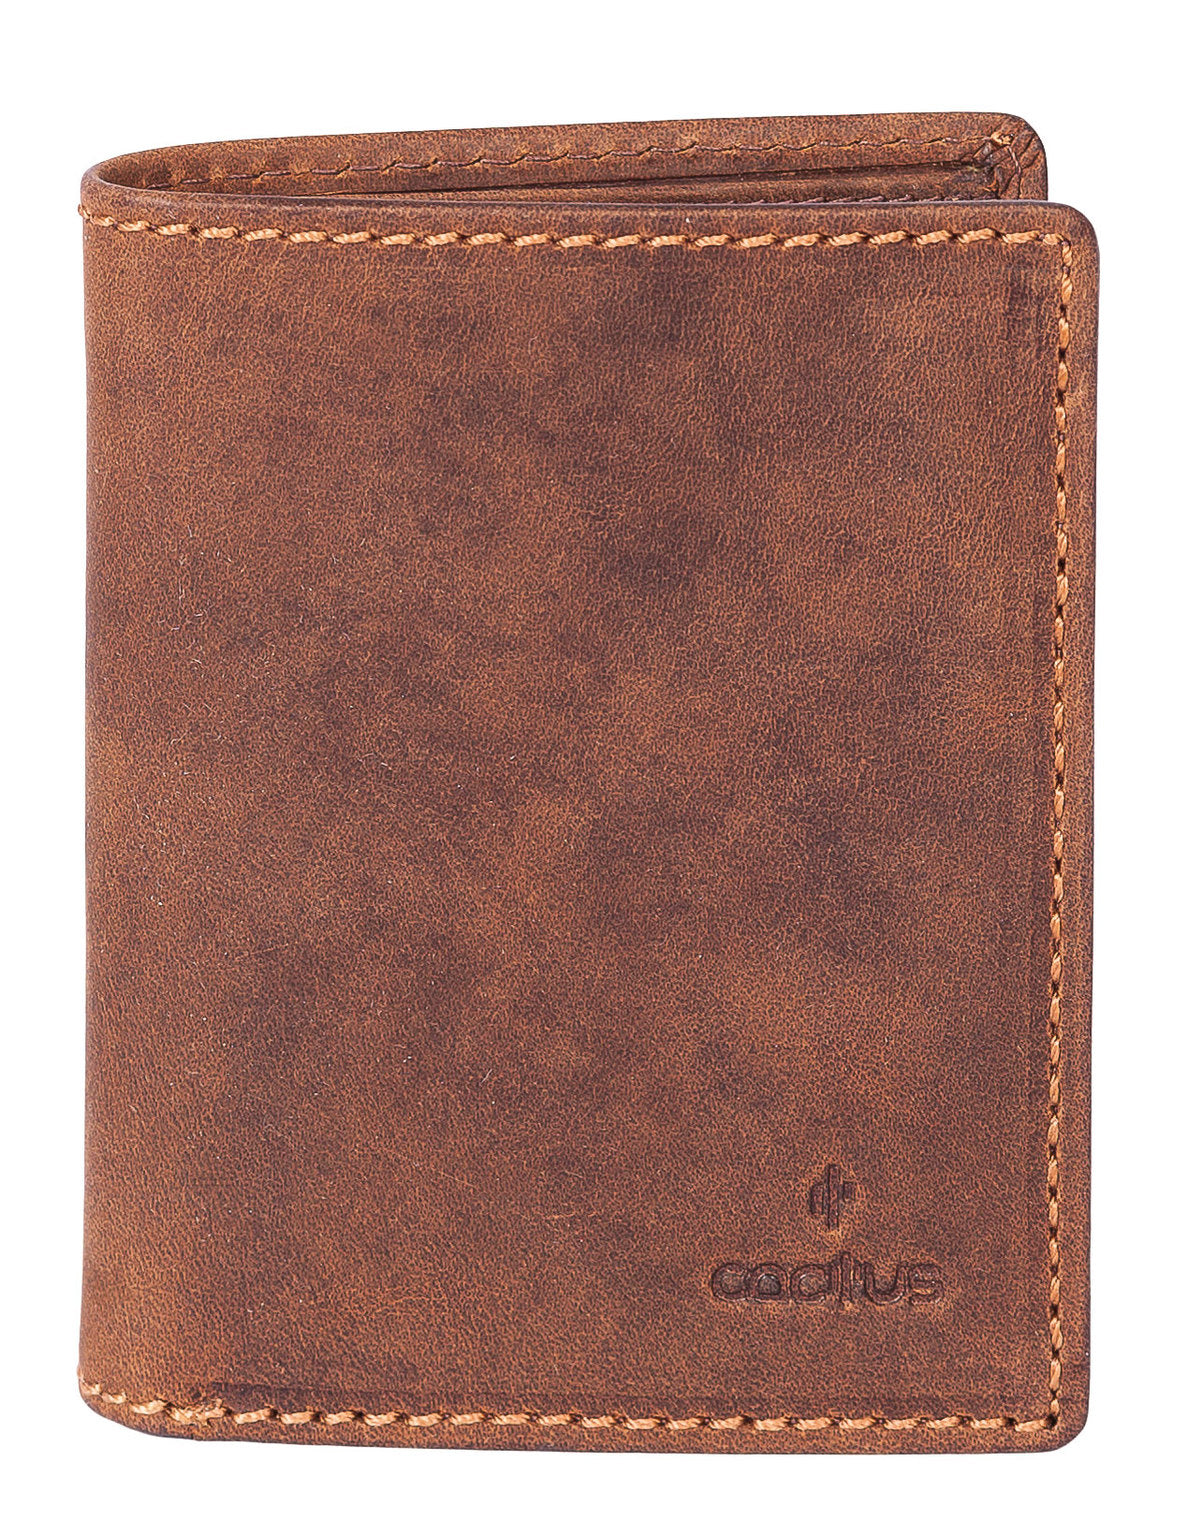 Cactus Leather Note and Card Holder in Brown